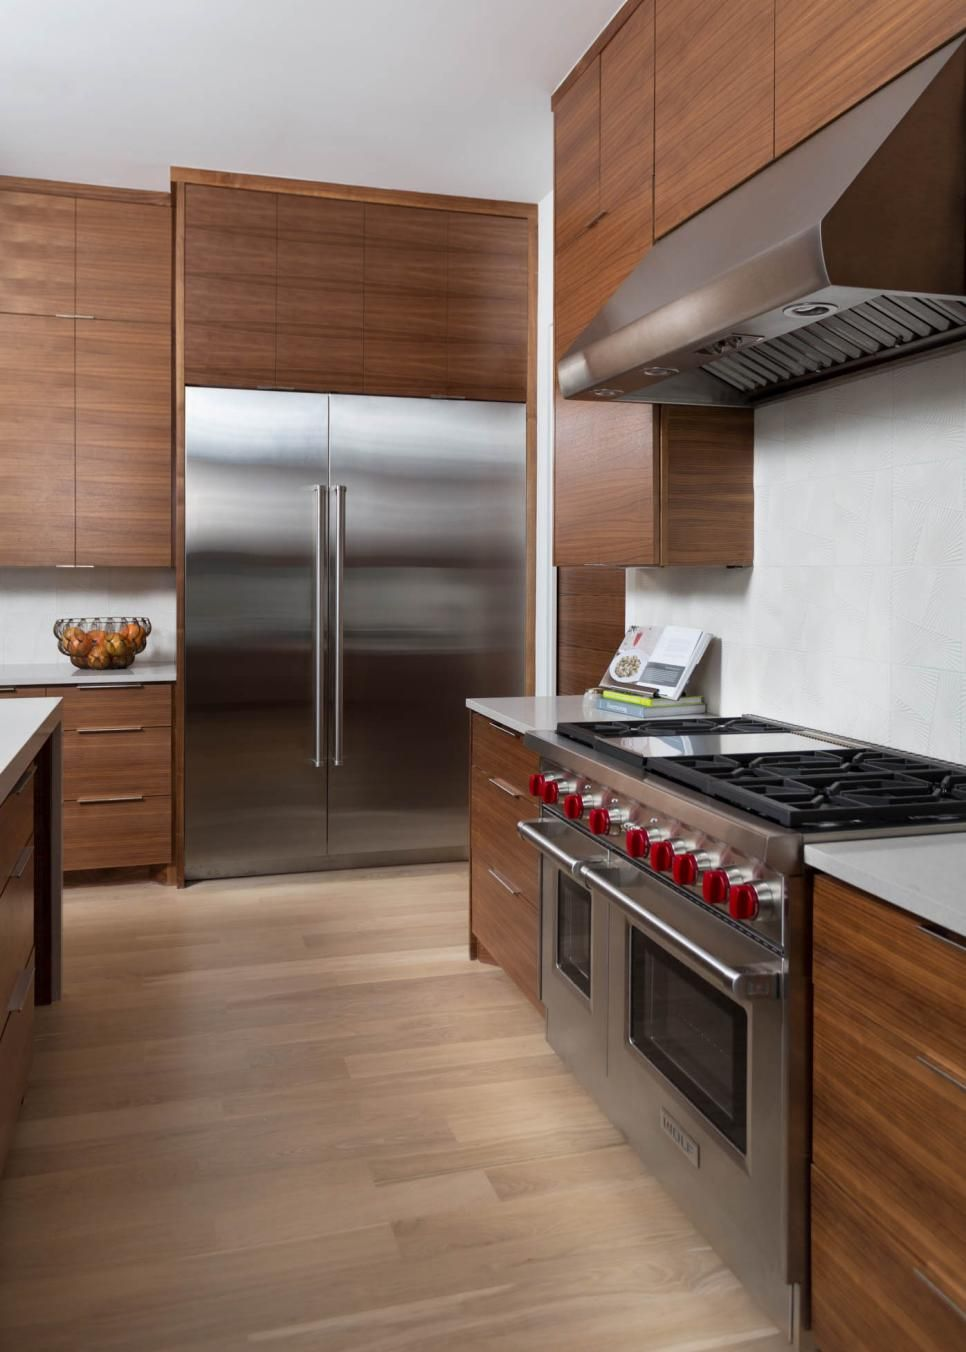 Modern Kitchen With Flat Front Walnut Cabinets And Stainless Steel